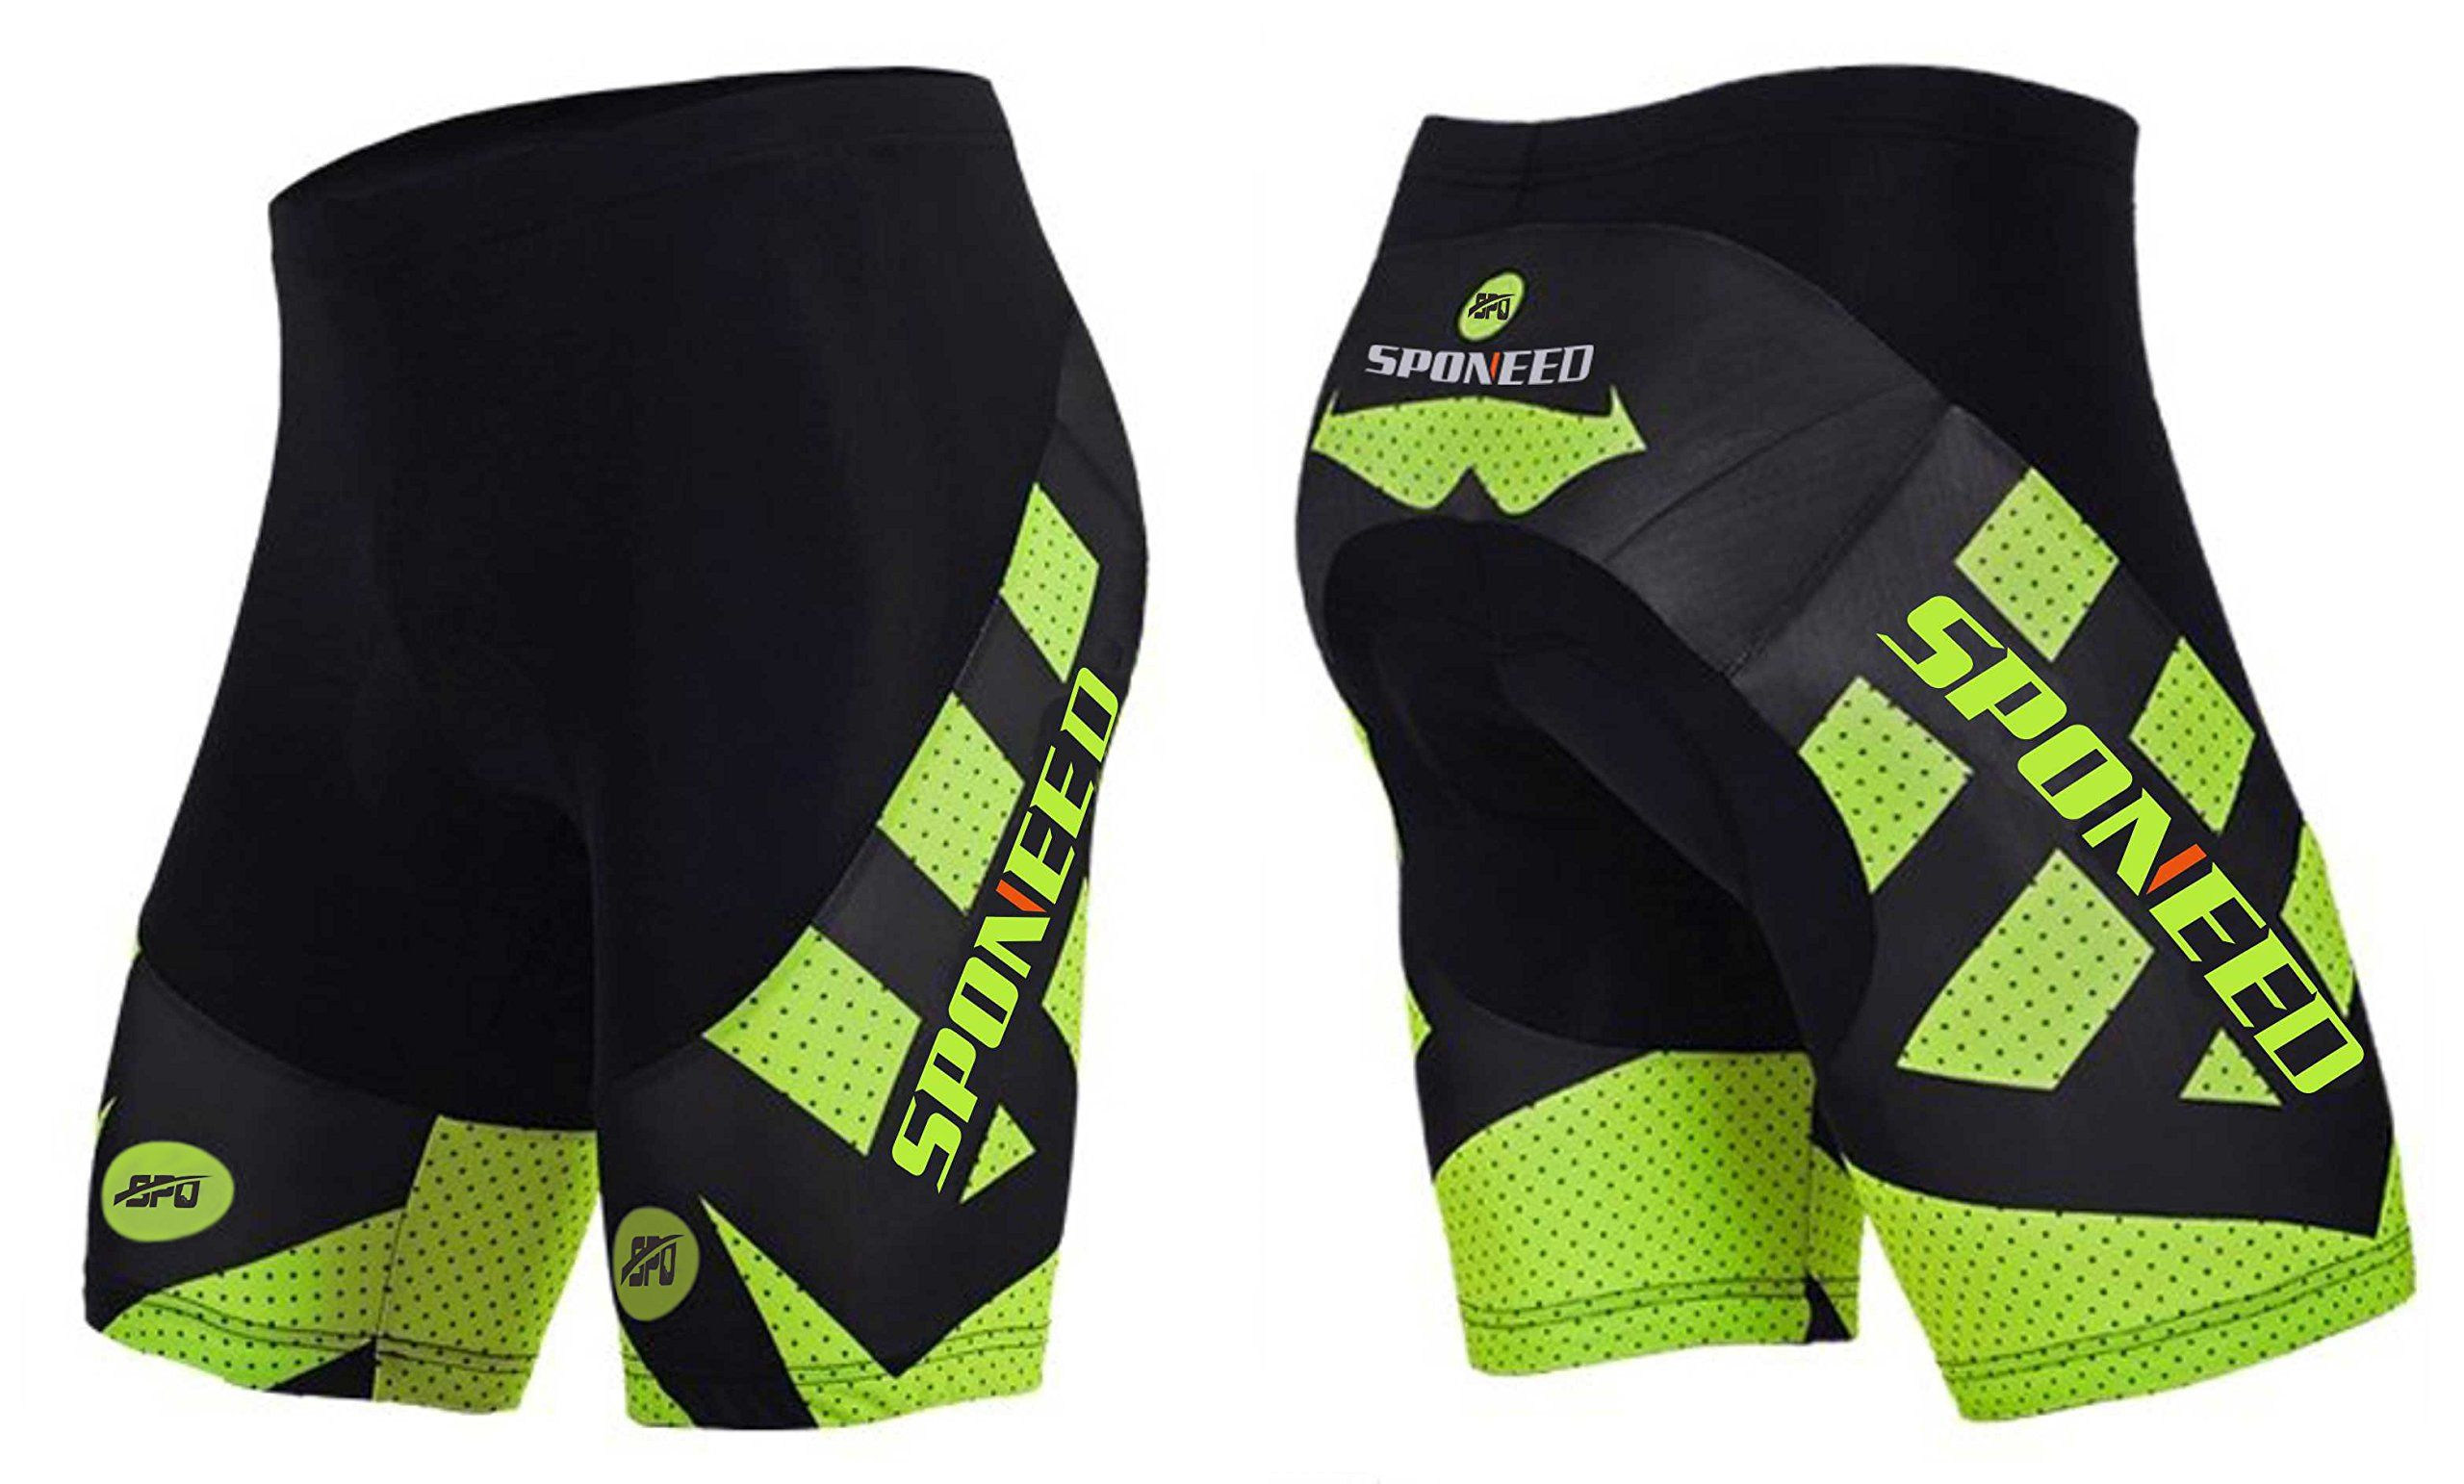 Padded Bike Shorts Men Sponeed Bicycle Short Half Pants Bike Wear